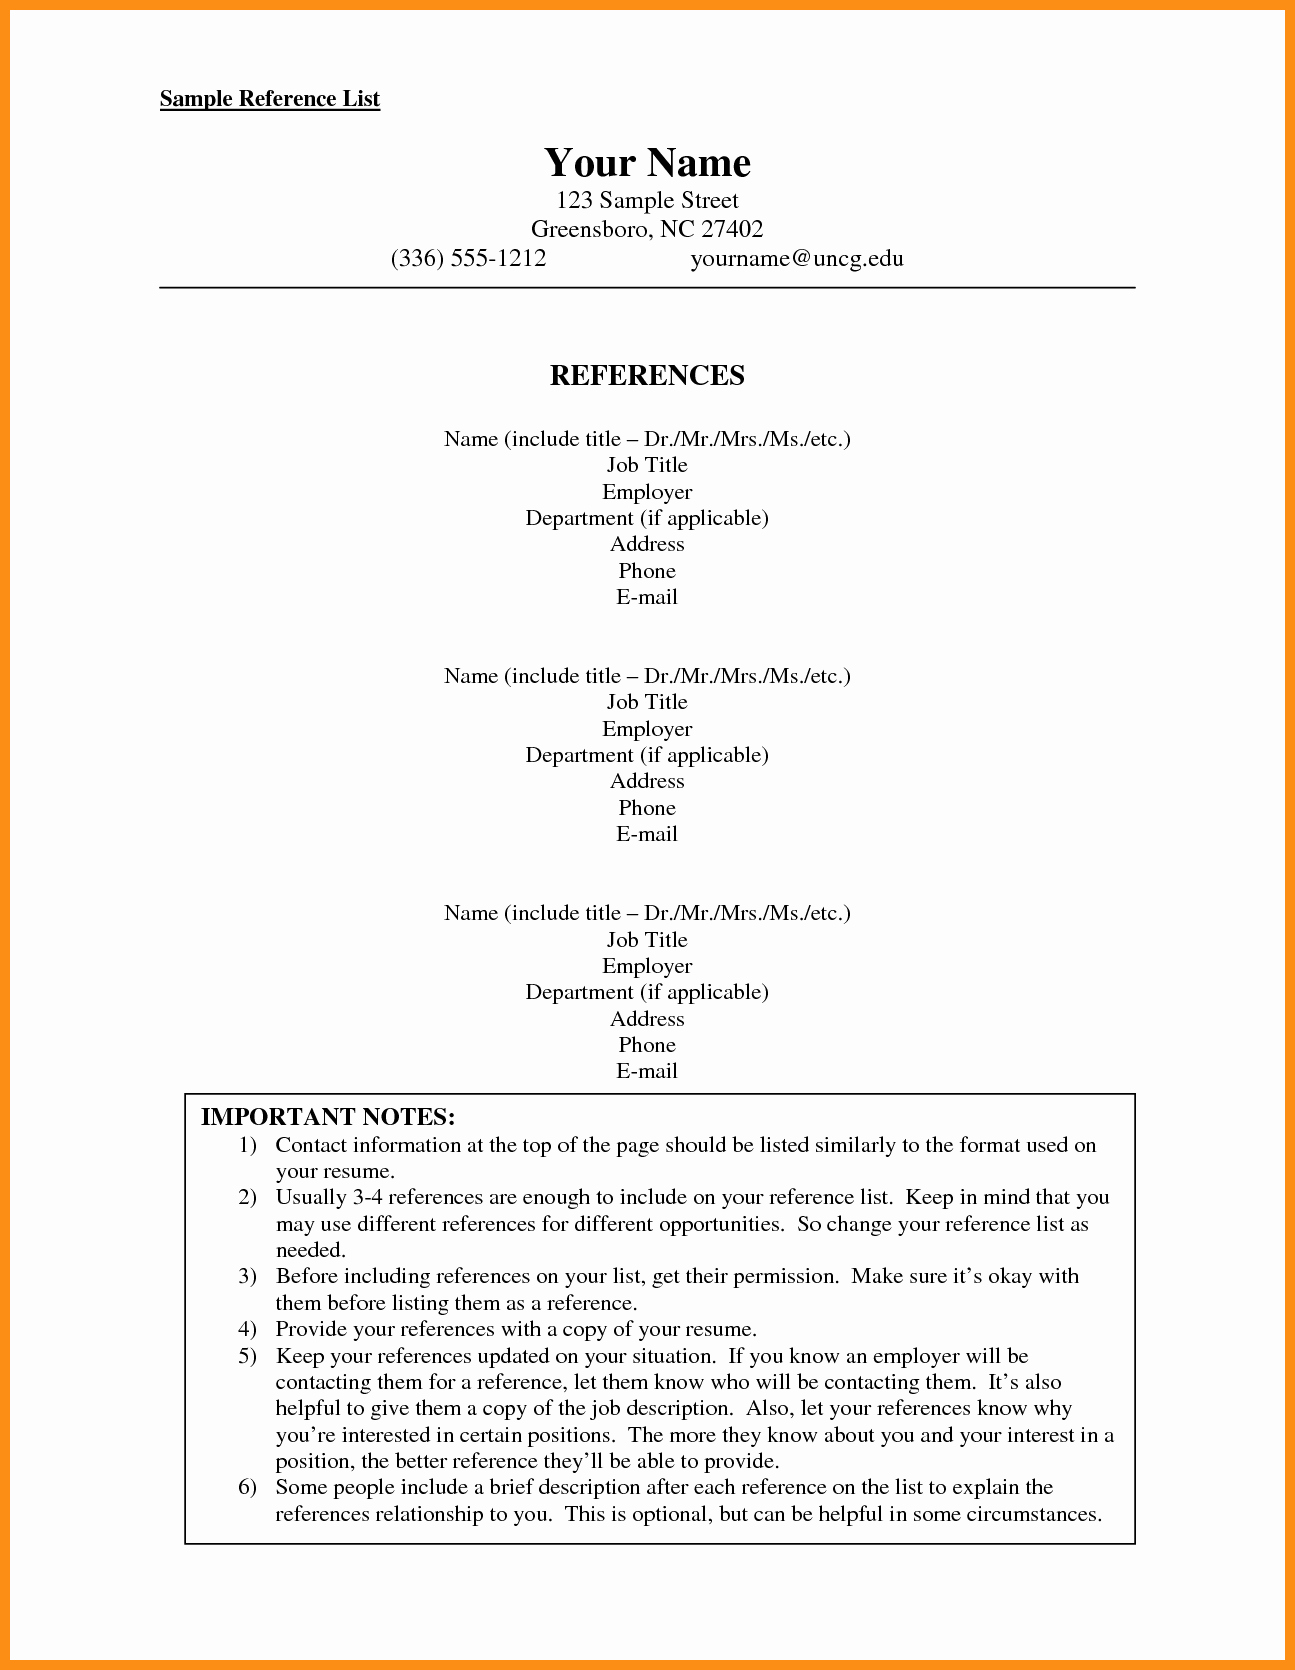 Listing References On A Resume Awesome 10 11 How to Make A Reference List for A Job